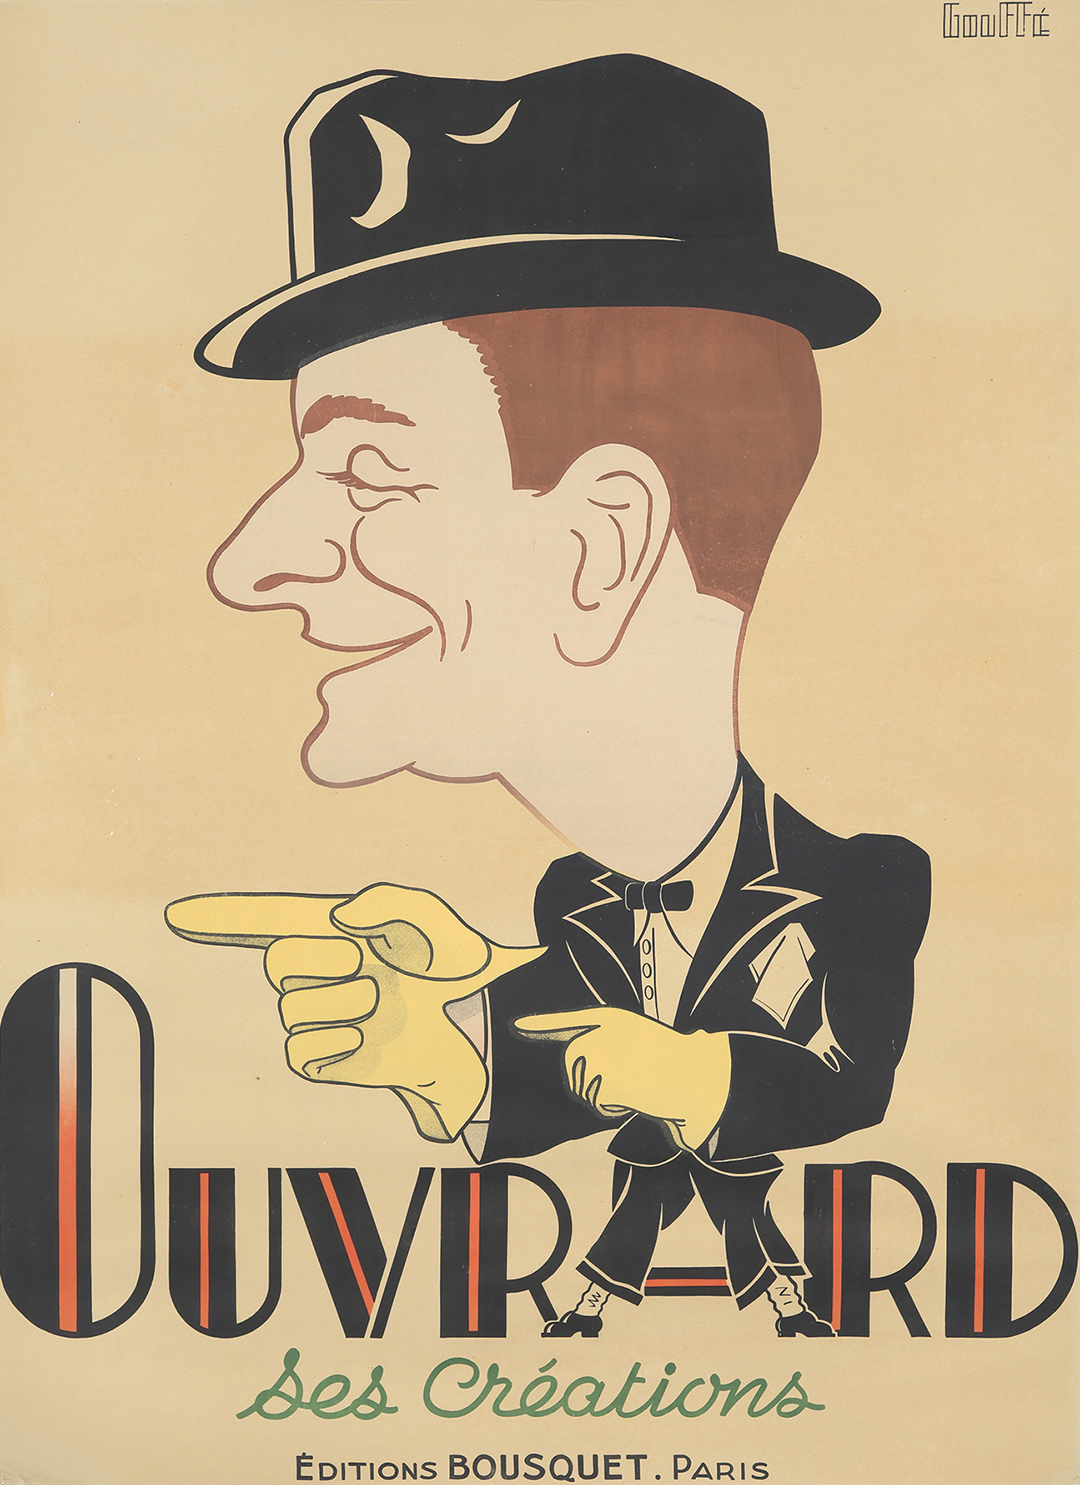 227. Ouvrard. ca. 1920.